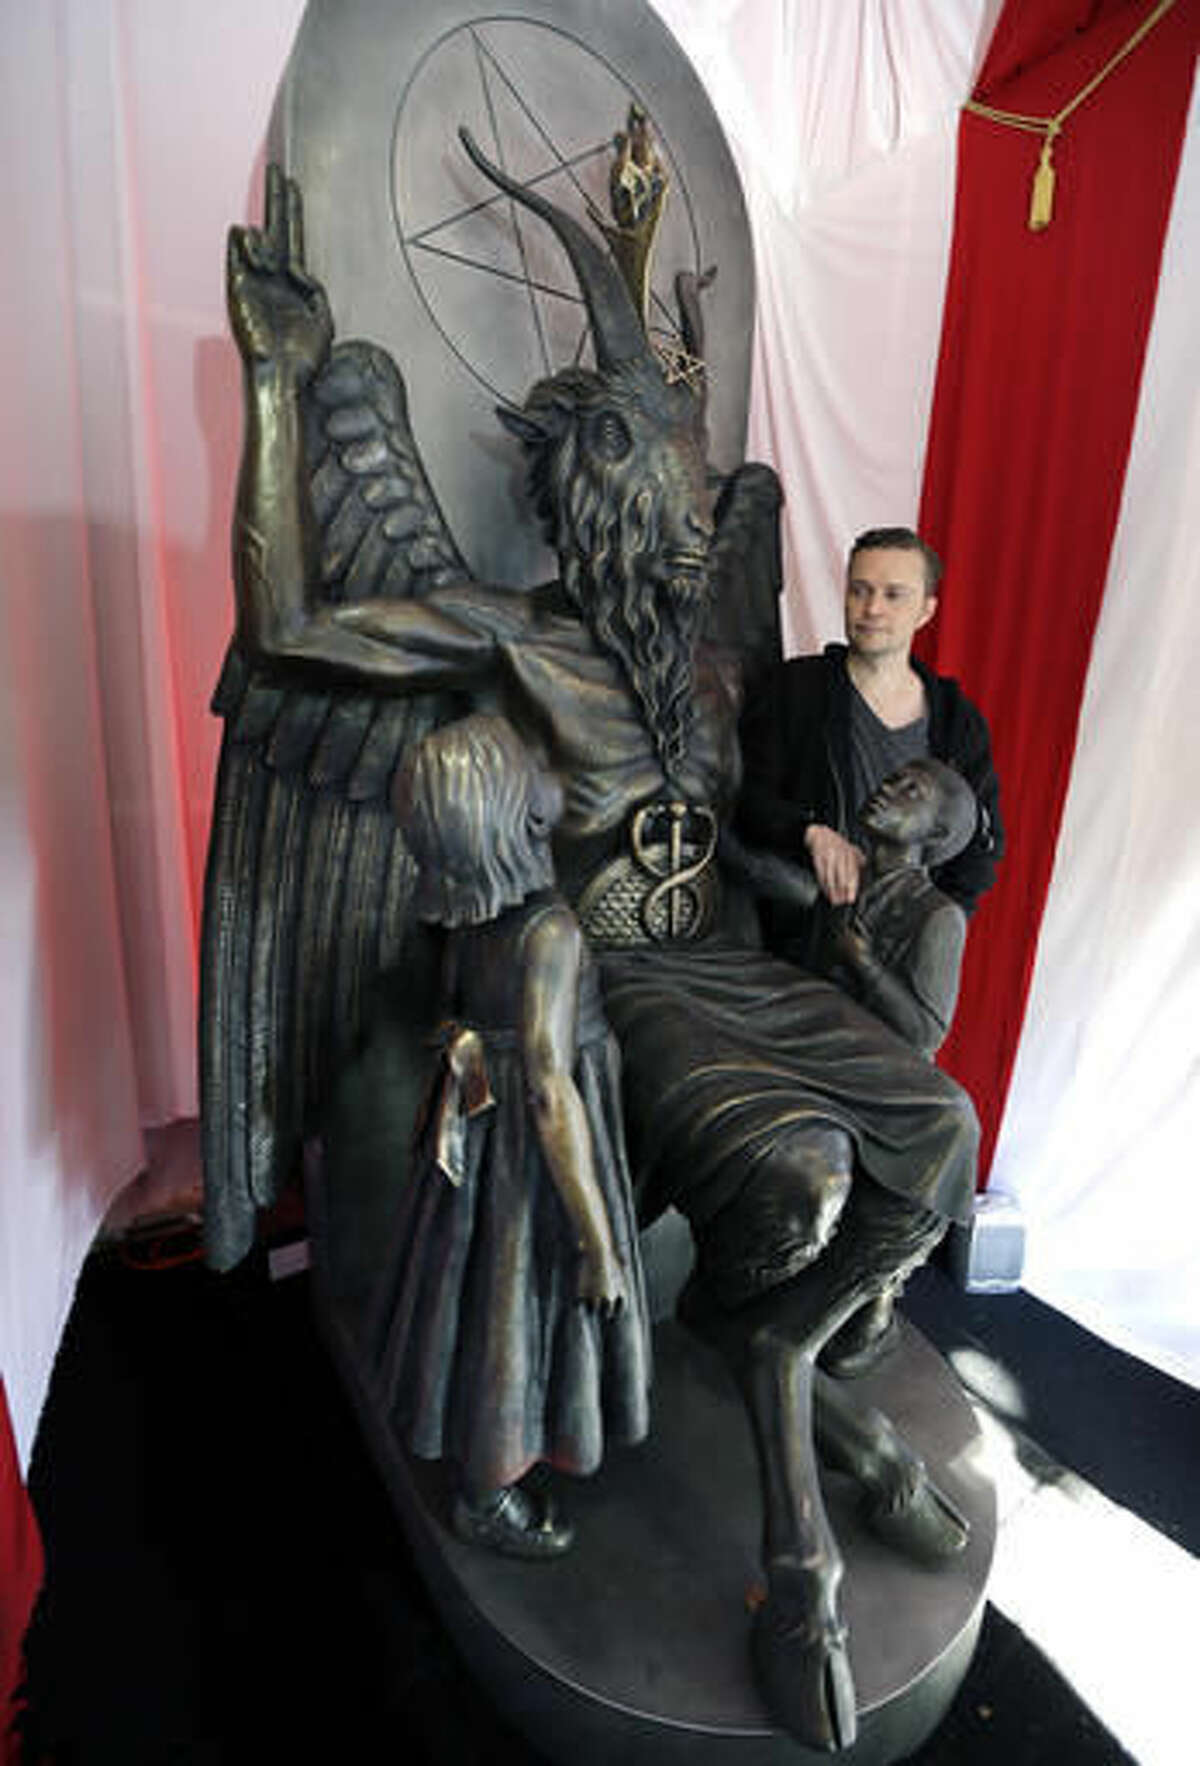 """In this Oct. 24, 2016 photo, Lucien Greaves stands next to a 9-foot statue of the goat-headed idol Baphomet at the recently opened international headquarters of the Satanic Temple in Salem, Mass. The Satanic Temple is waging religious battles along a variety of fronts nationwide, and its co-founder says it's just getting started. Greaves says the temple hopes to ensure Satanists """"have a place in the world"""" and that """"evangelical theocrats"""" don't monopolize the religious freedom debate. (AP Photo/Elise Amendola)"""